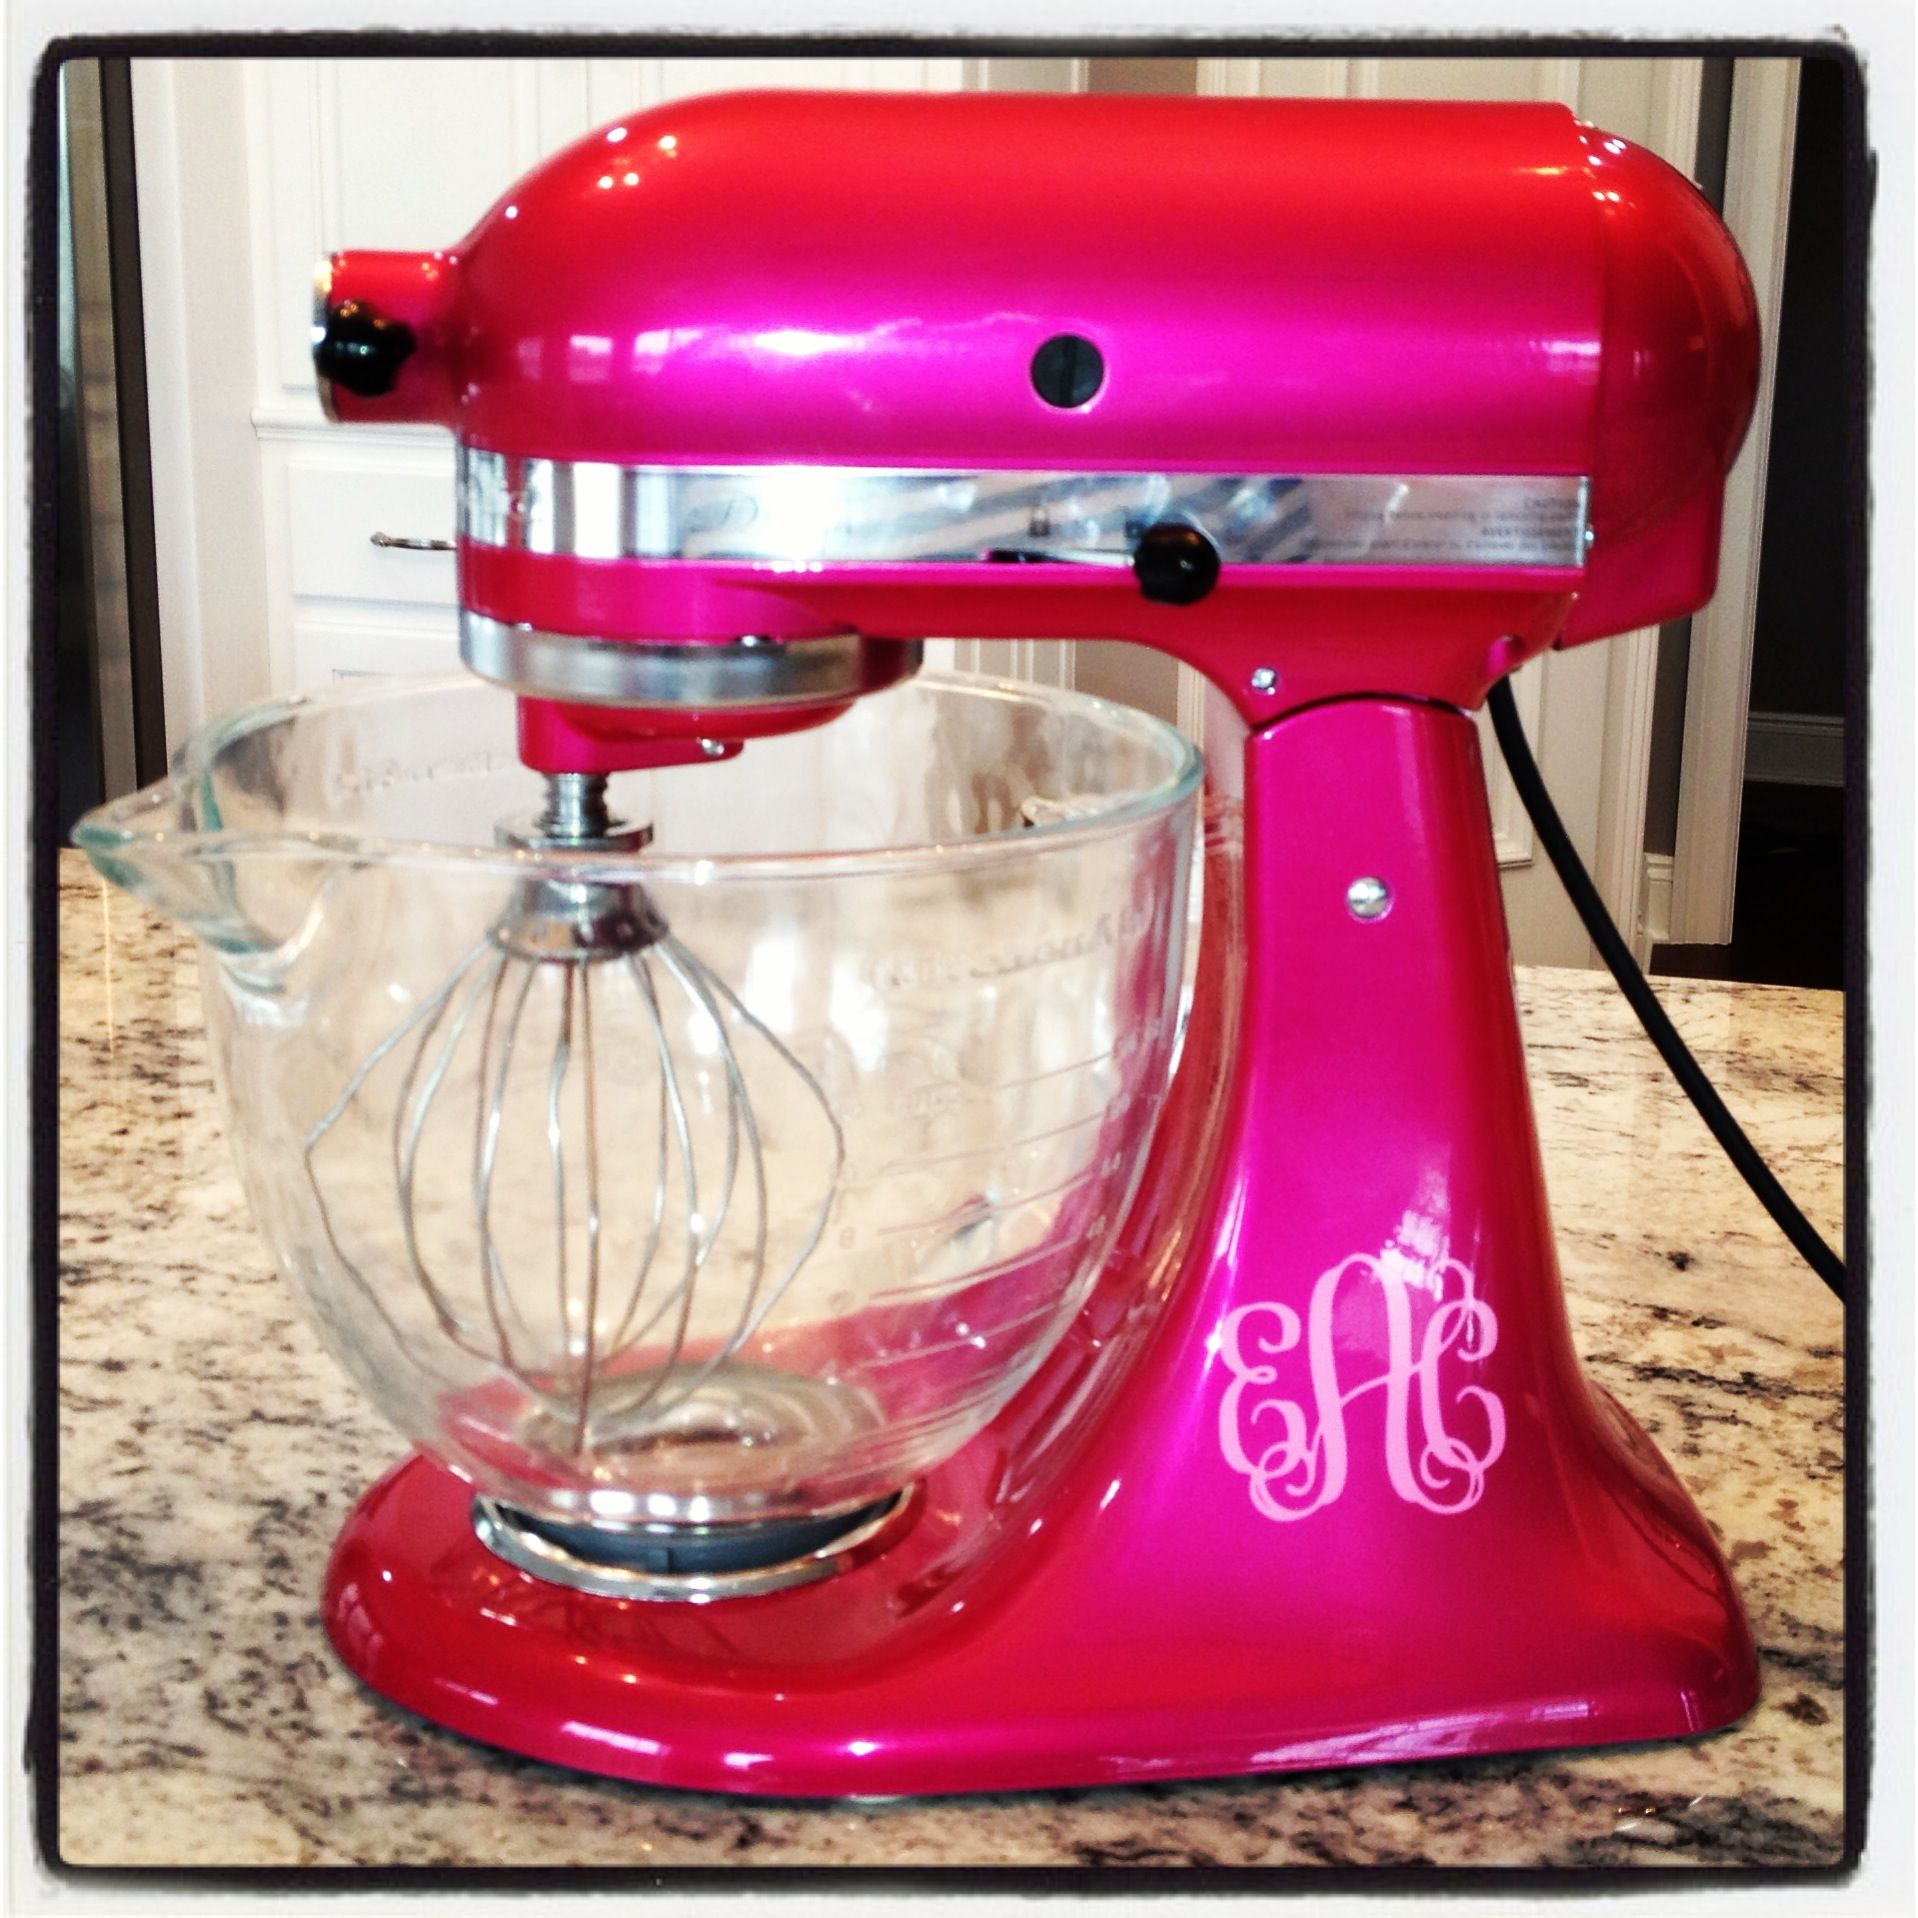 Customized Kitchen Aid Mixer In Raspberry Ice With Monogram